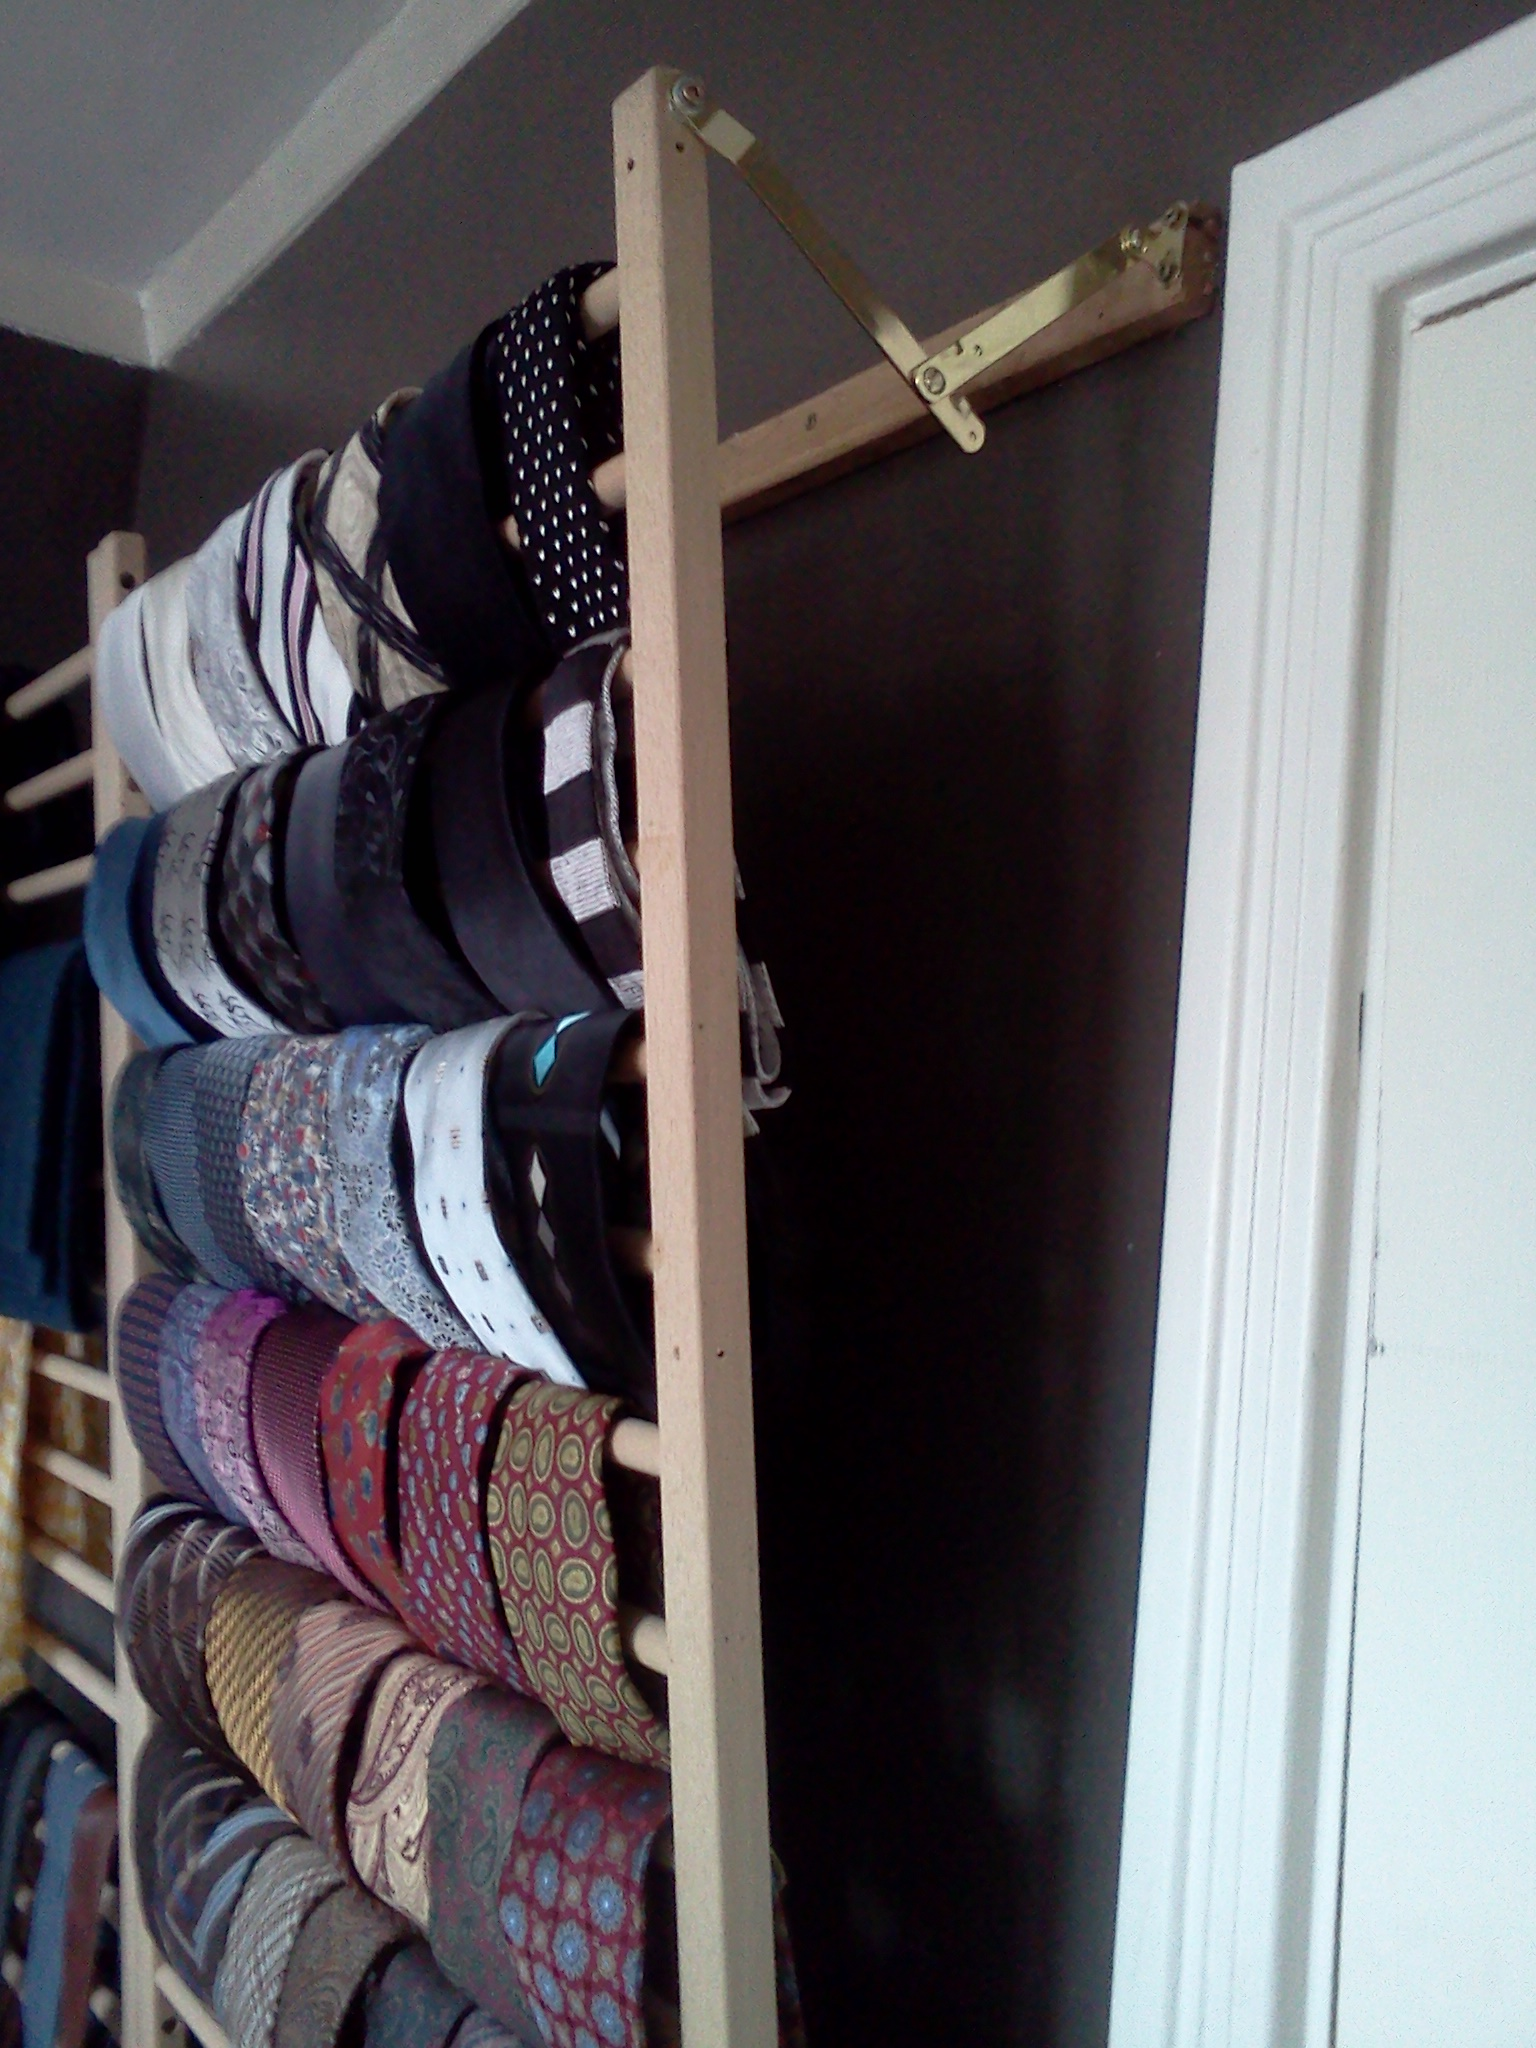 sits door styleforum rack with are my lack space behind ties half the closet other threads to room due in wall of tie mounted closed nicely instead displayed